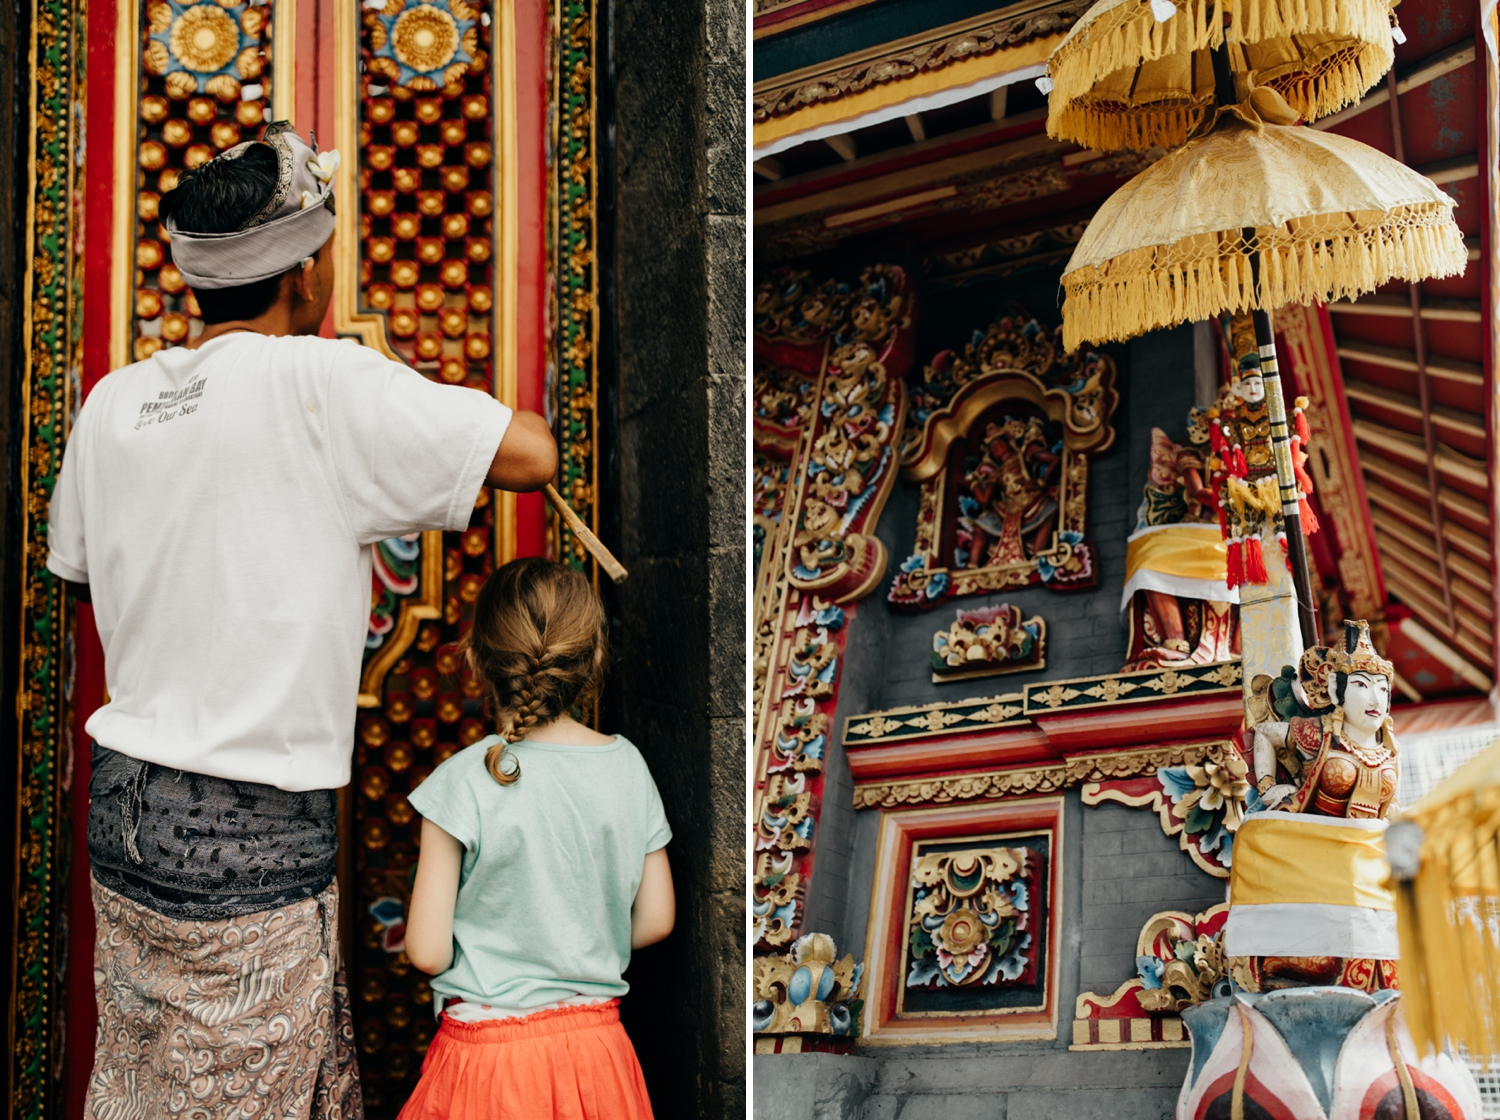 People entering temple in Bali, Indonesia